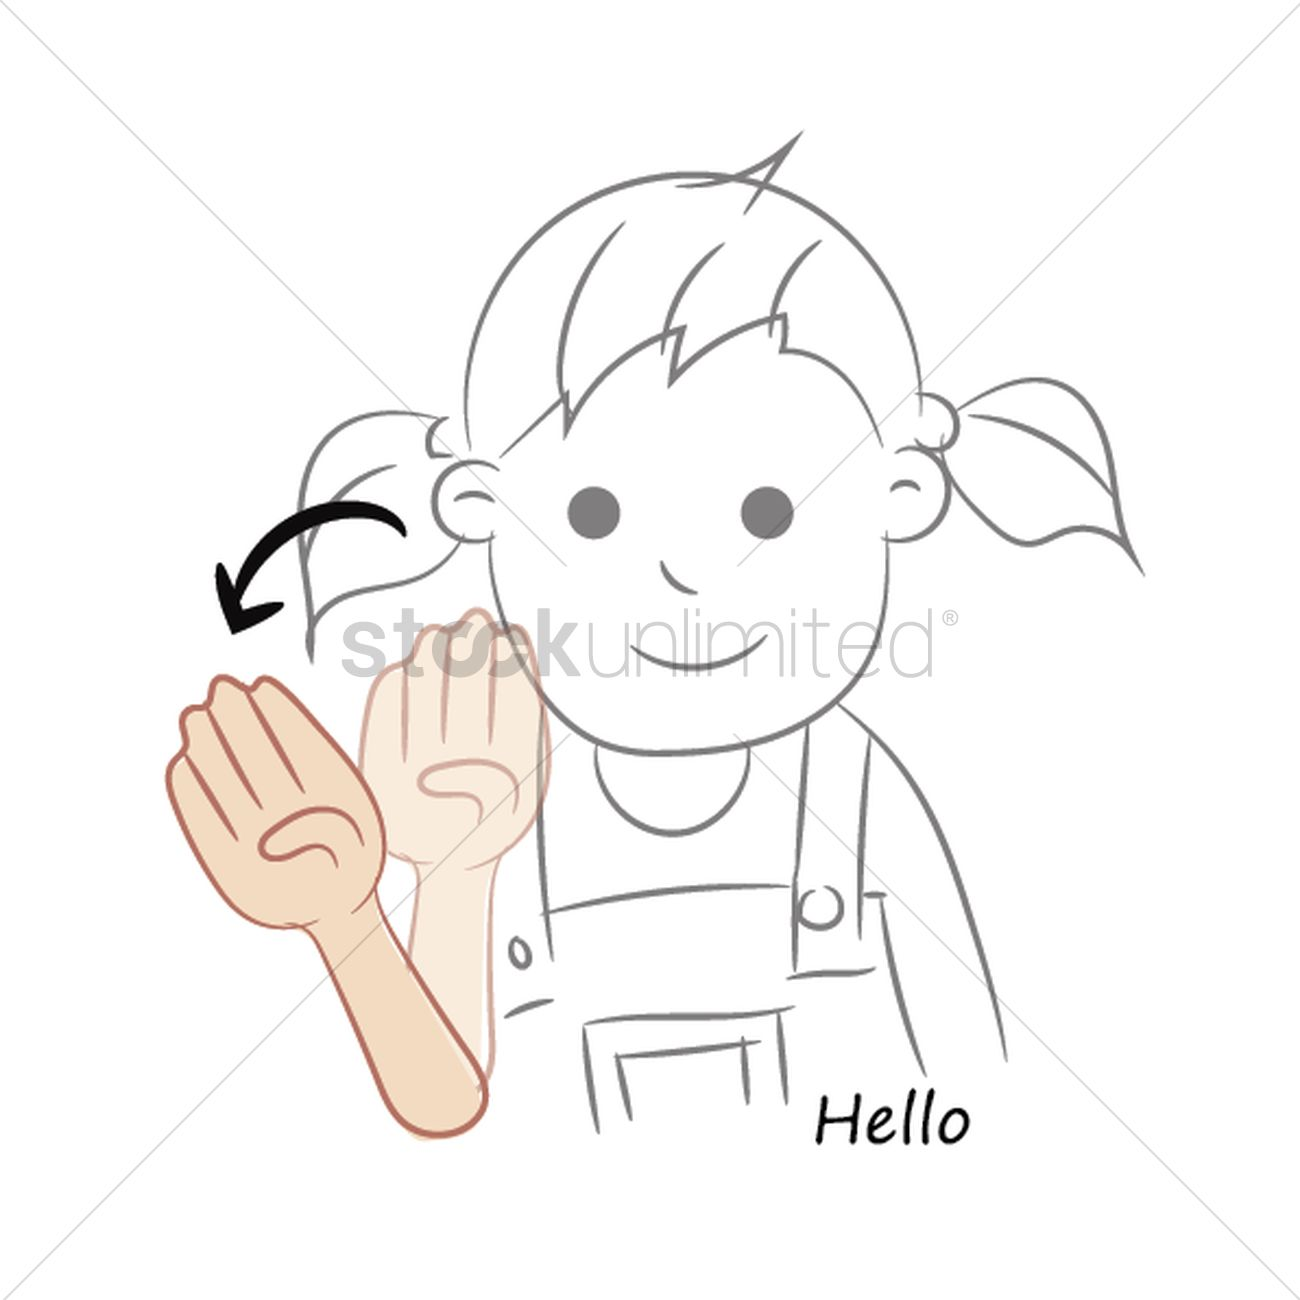 Hello in sign language vector image 2034145 stockunlimited hello in sign language vector graphic m4hsunfo